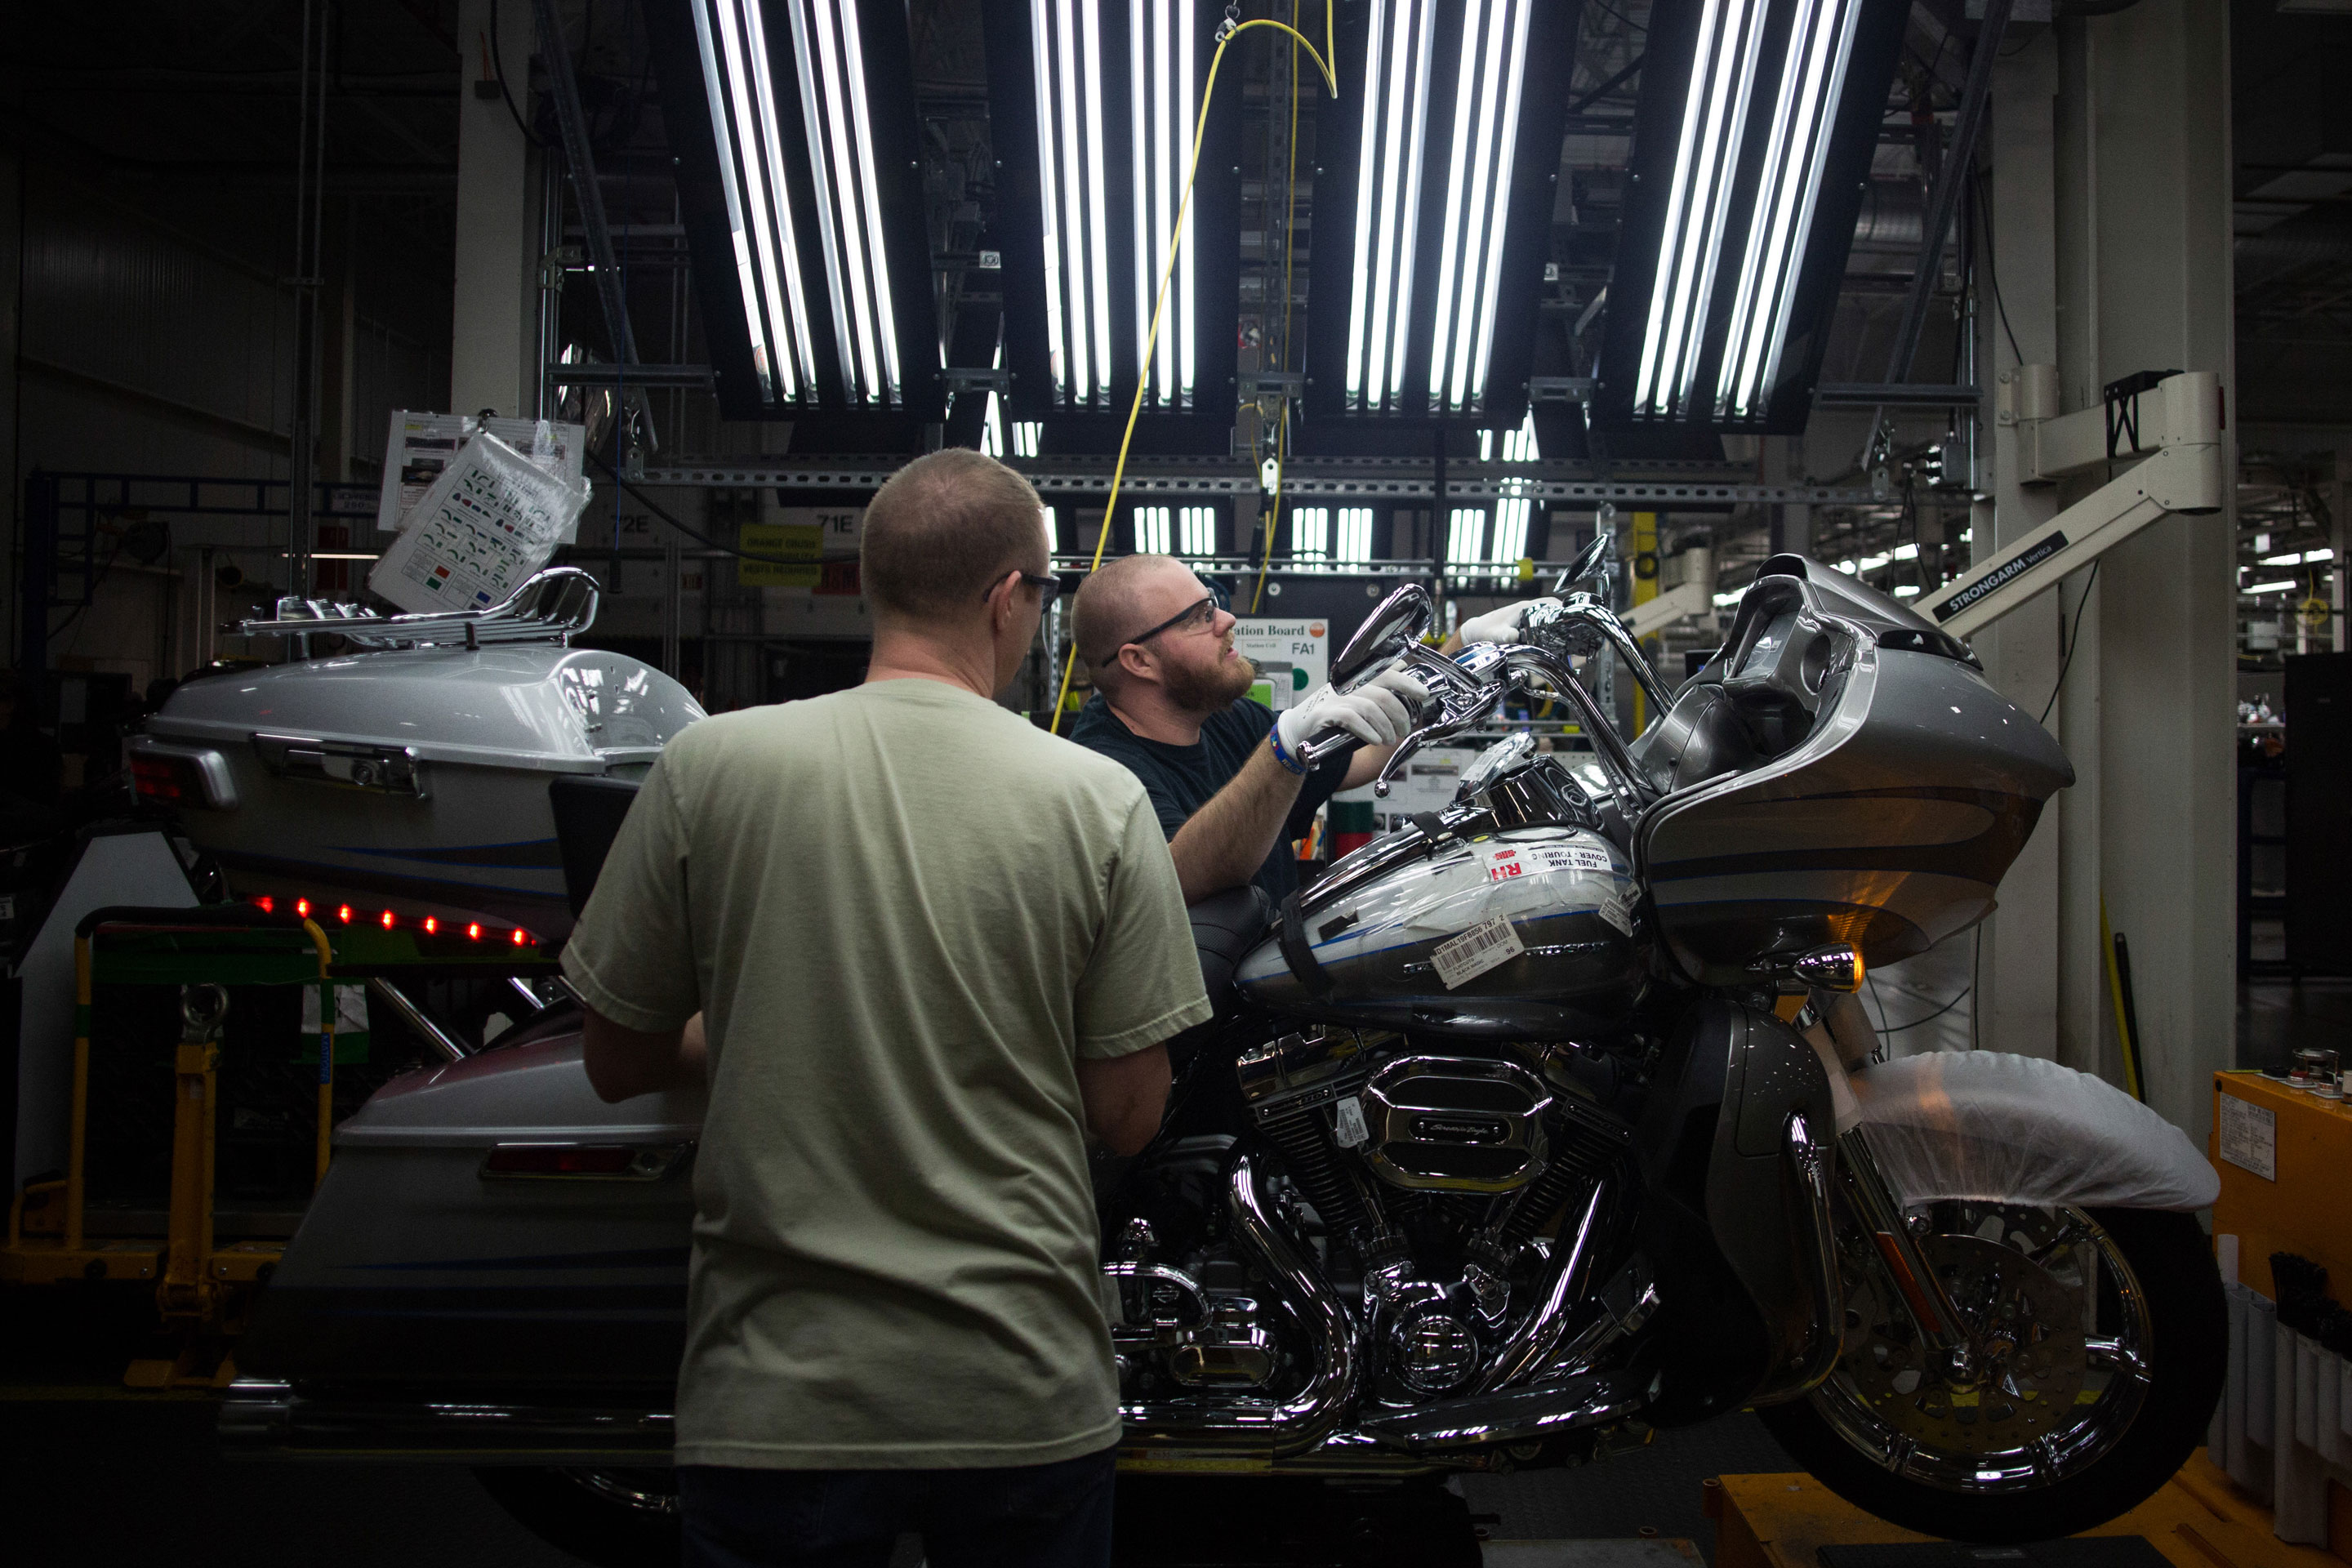 Employees work on the assembly line at the Harley-Davidson Inc. manufacturing facility in York, Pennsylvania, U.S., in 2015.